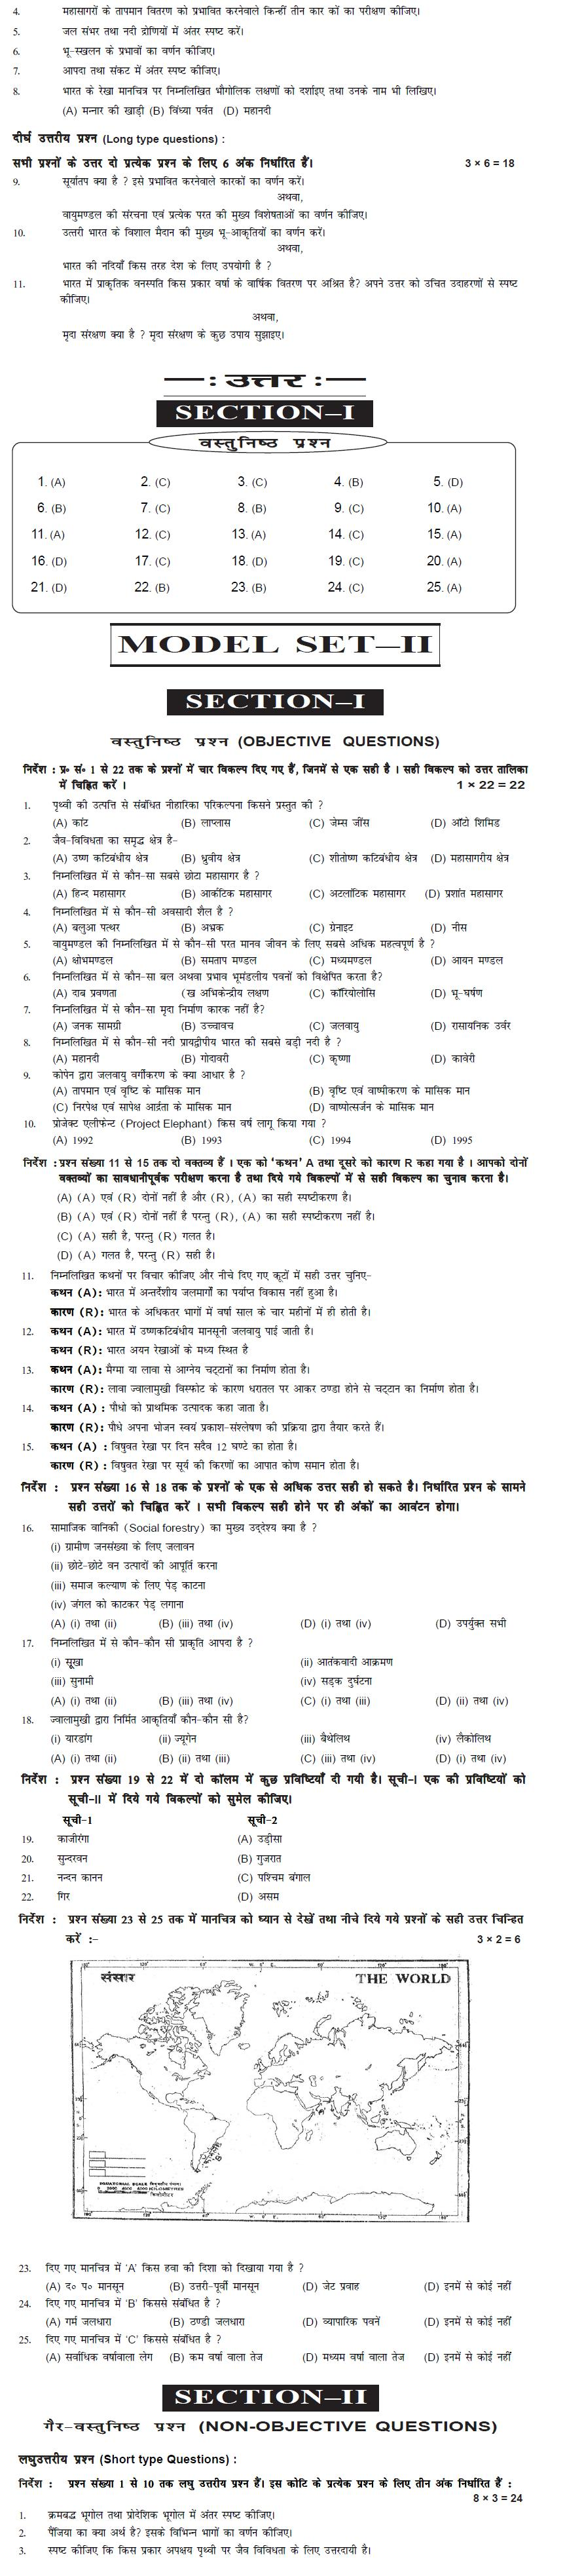 Bihar Board Class XI Arts Model Question Papers - Geography